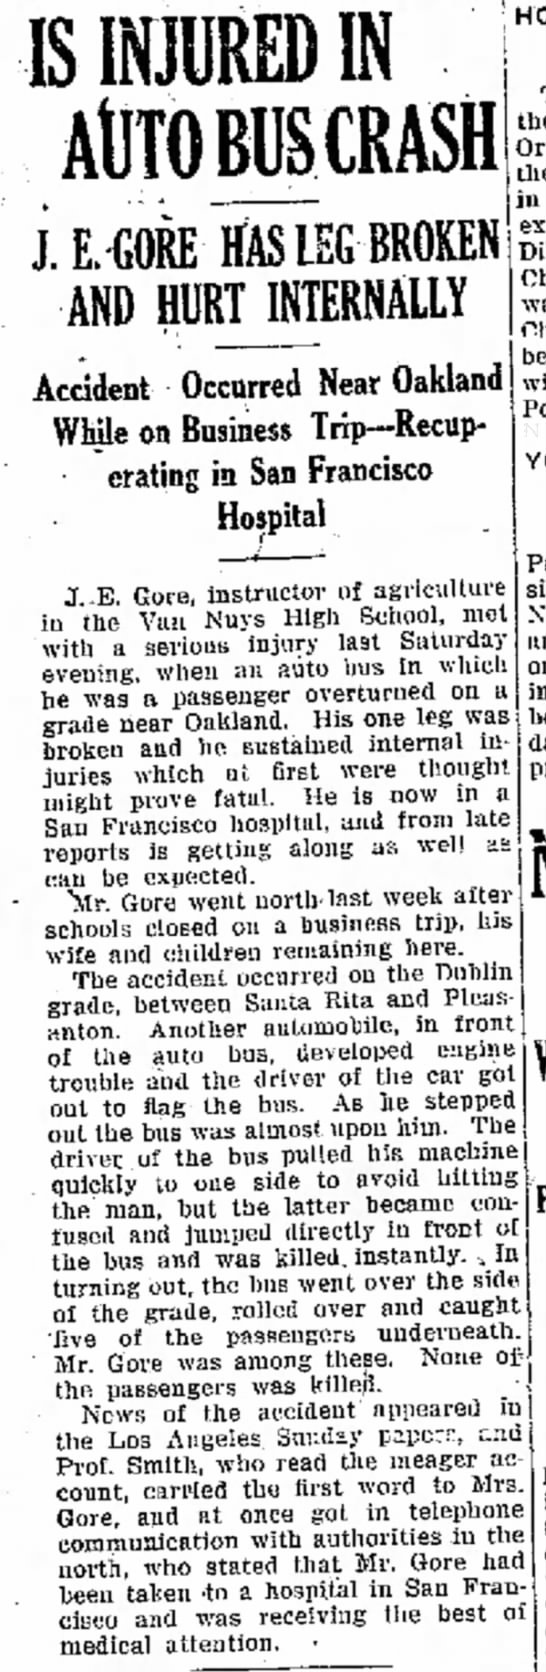 Accident on Dublin Grade, 1920 - IS INJURED IN AlITOBUSCRASH J. E. GORE HAS l£G...